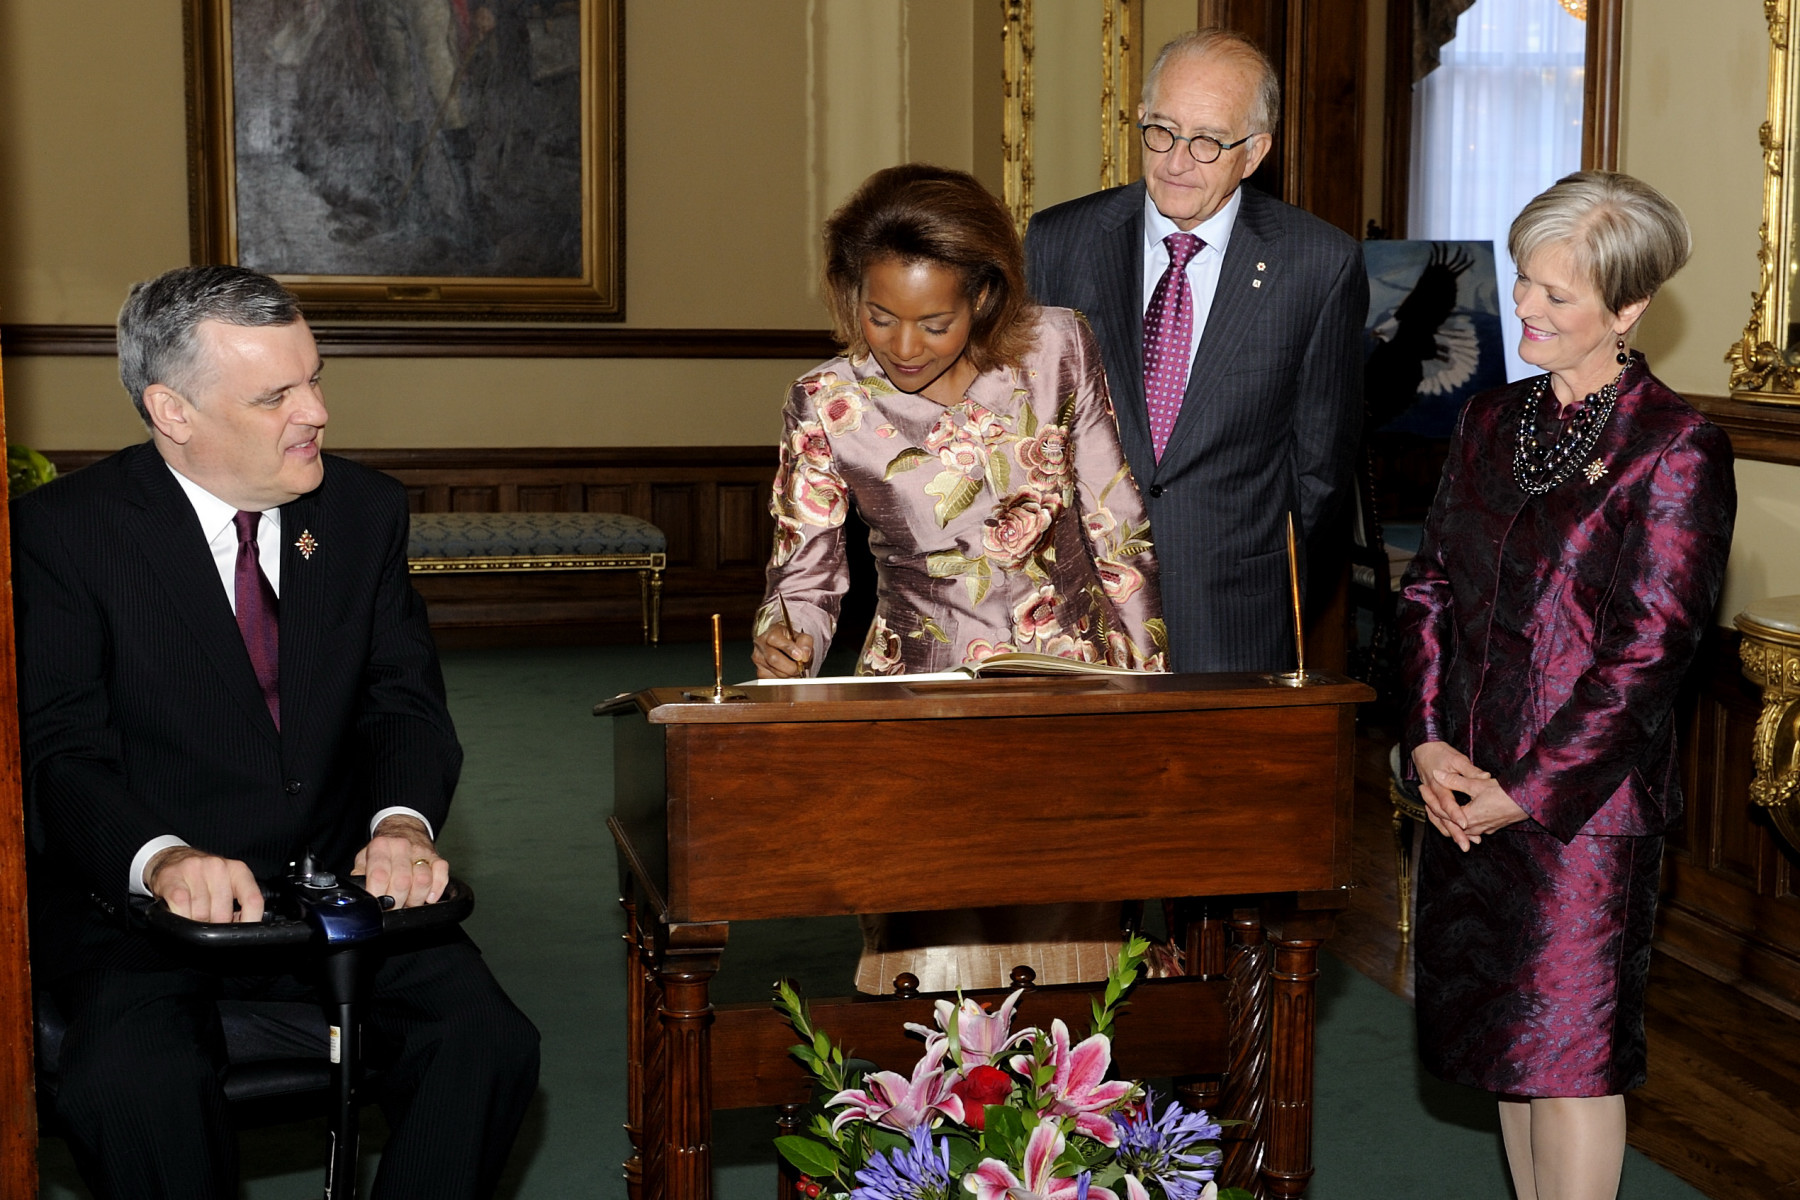 Upon their arrival in Toronto, Their Excellencies the Right Honourable Michaëlle Jean, Governor General of Canada, and Mr. Jean-Daniel Lafond met with His Honour the Honourable David C. Onley, Lieutenant Governor of Ontario, and his wife Mrs. Ruth Ann Onley. They both signed the guest book.